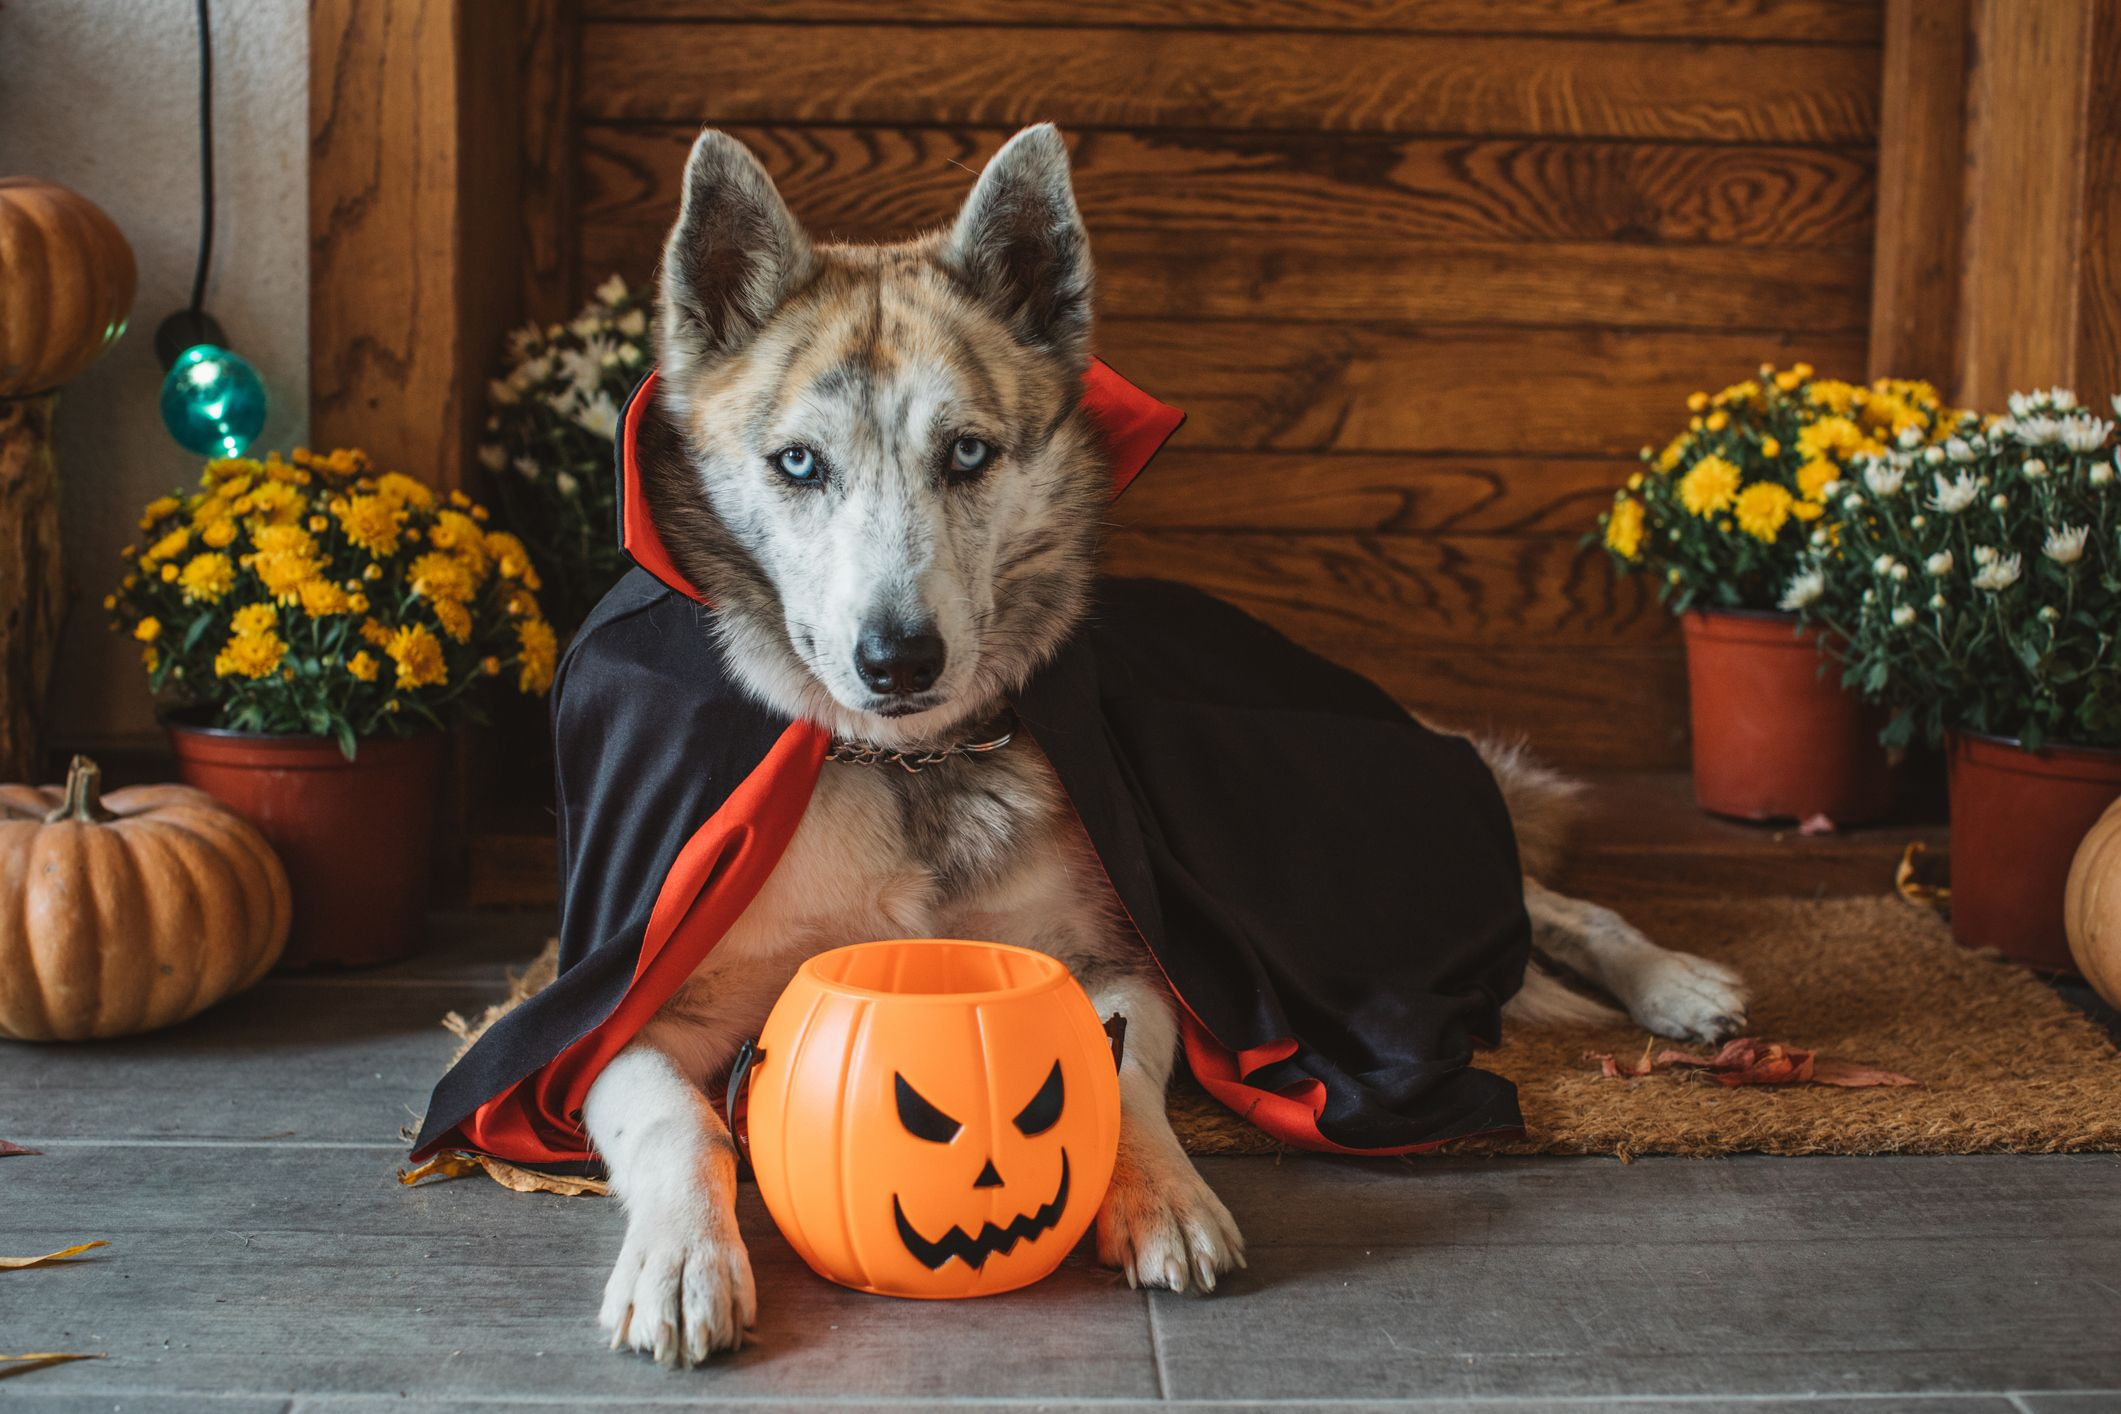 The rubie's costume company harley quinn dog costume goes perfectly with the rubie's mexican dog & cat serape. 53 Best Dog Costume Ideas Diy Pet Halloween Costumes